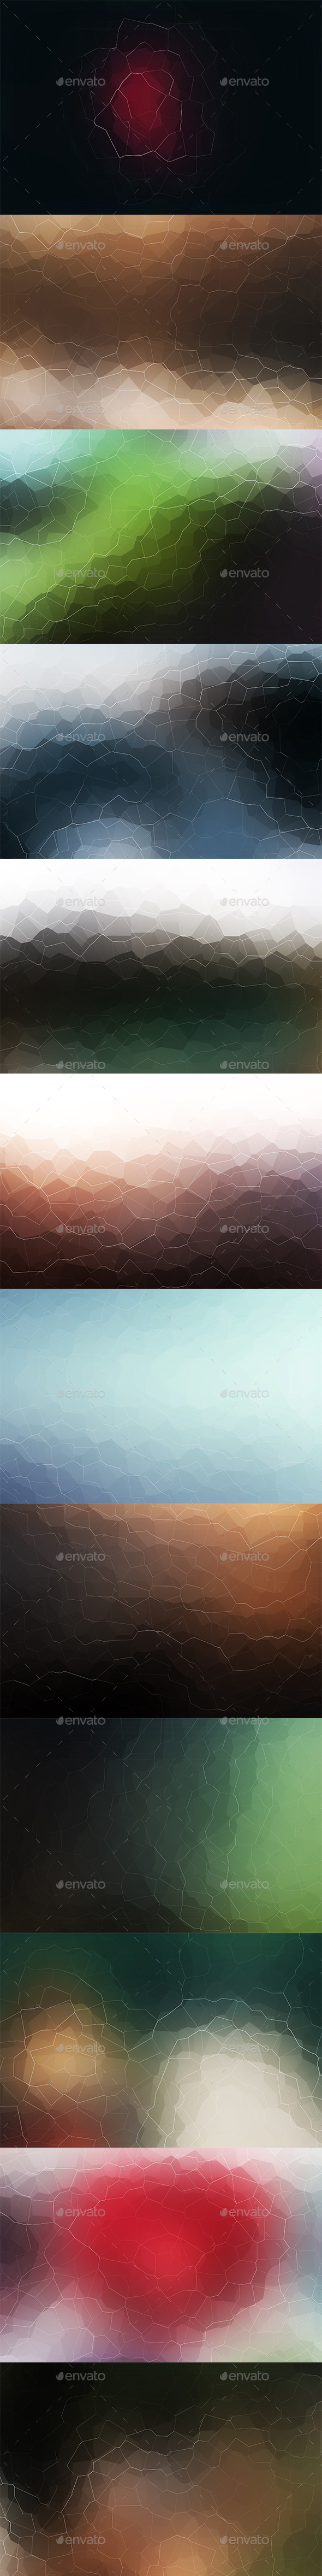 Crystallized Backgrounds Vol 11 - Abstract Backgrounds